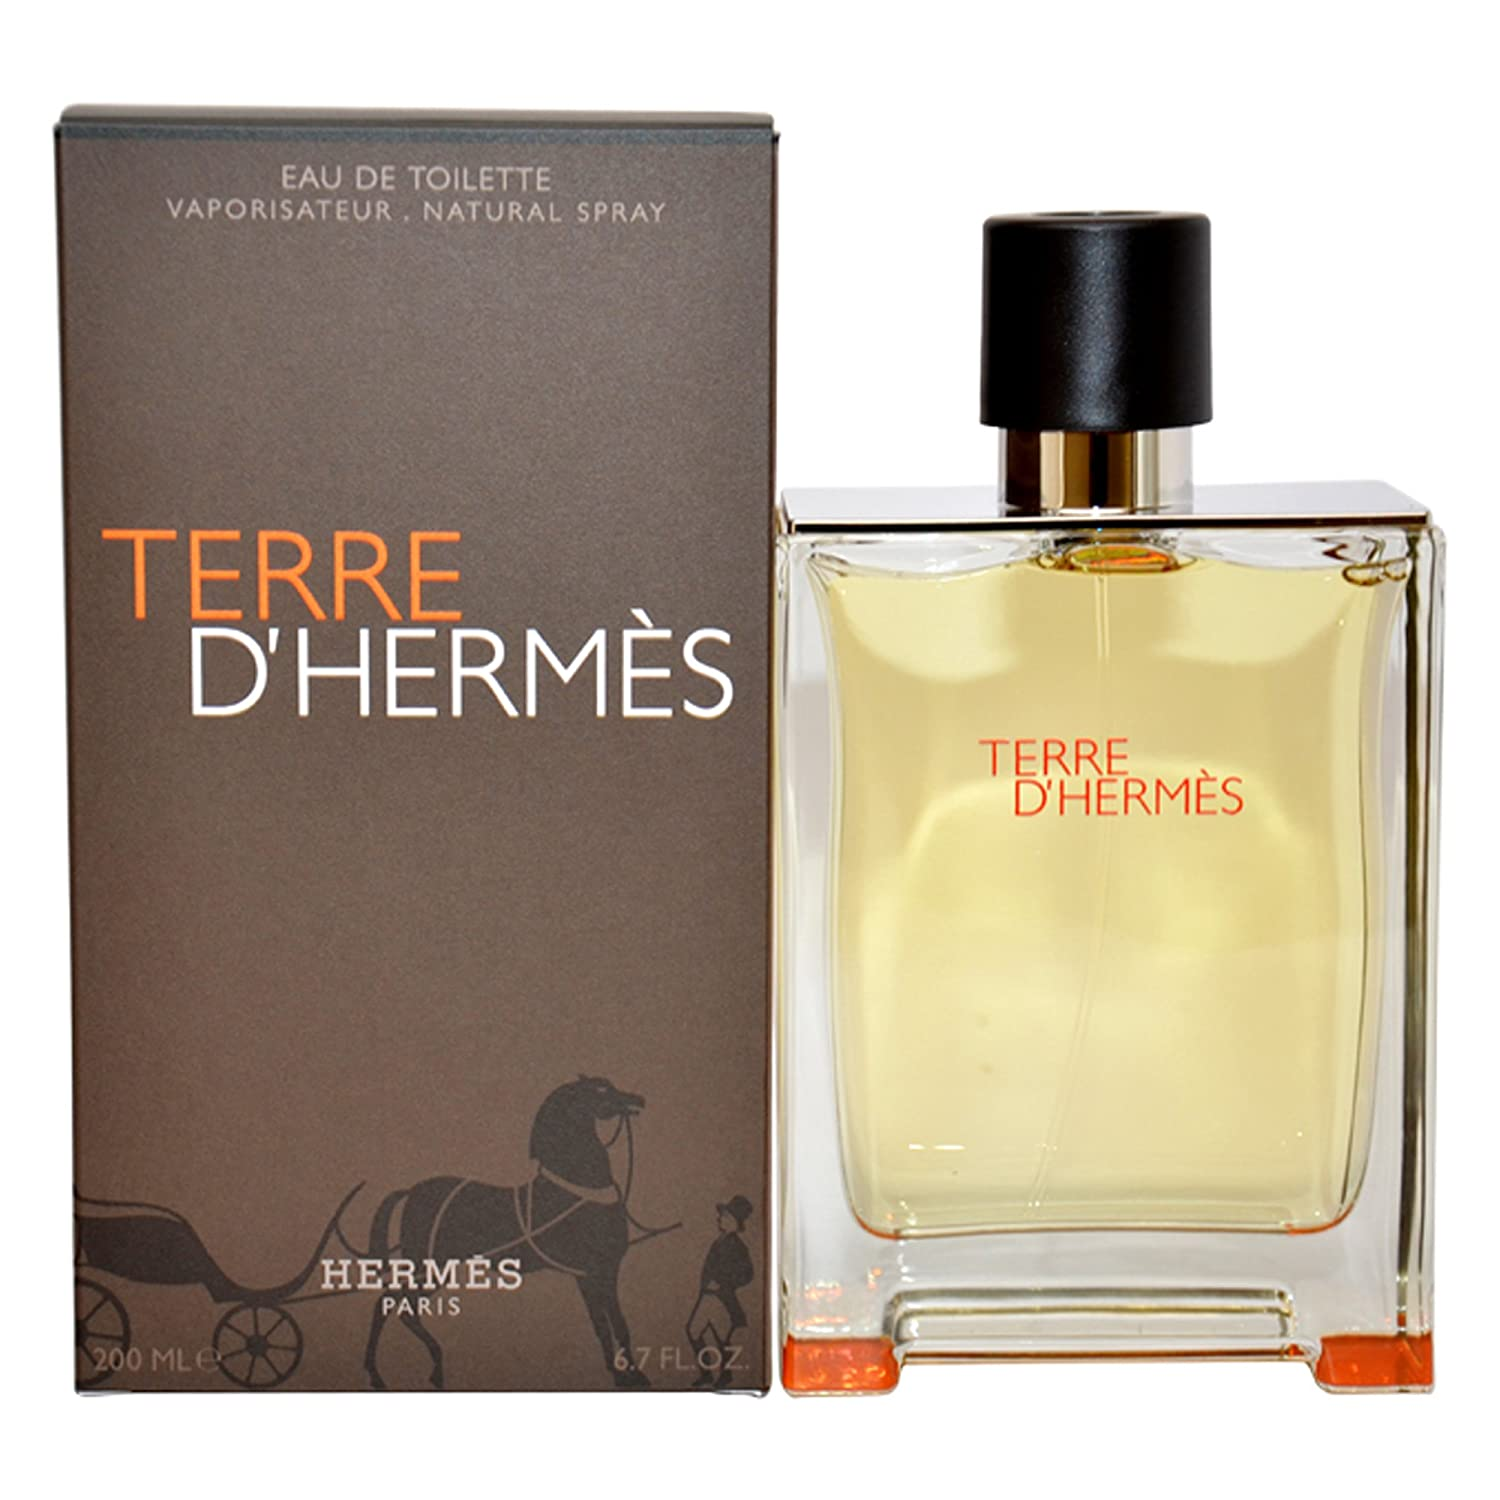 dbefec506b8 Amazon.com   Hermès Men s Terre d Hermès Eau de Toilette Spray